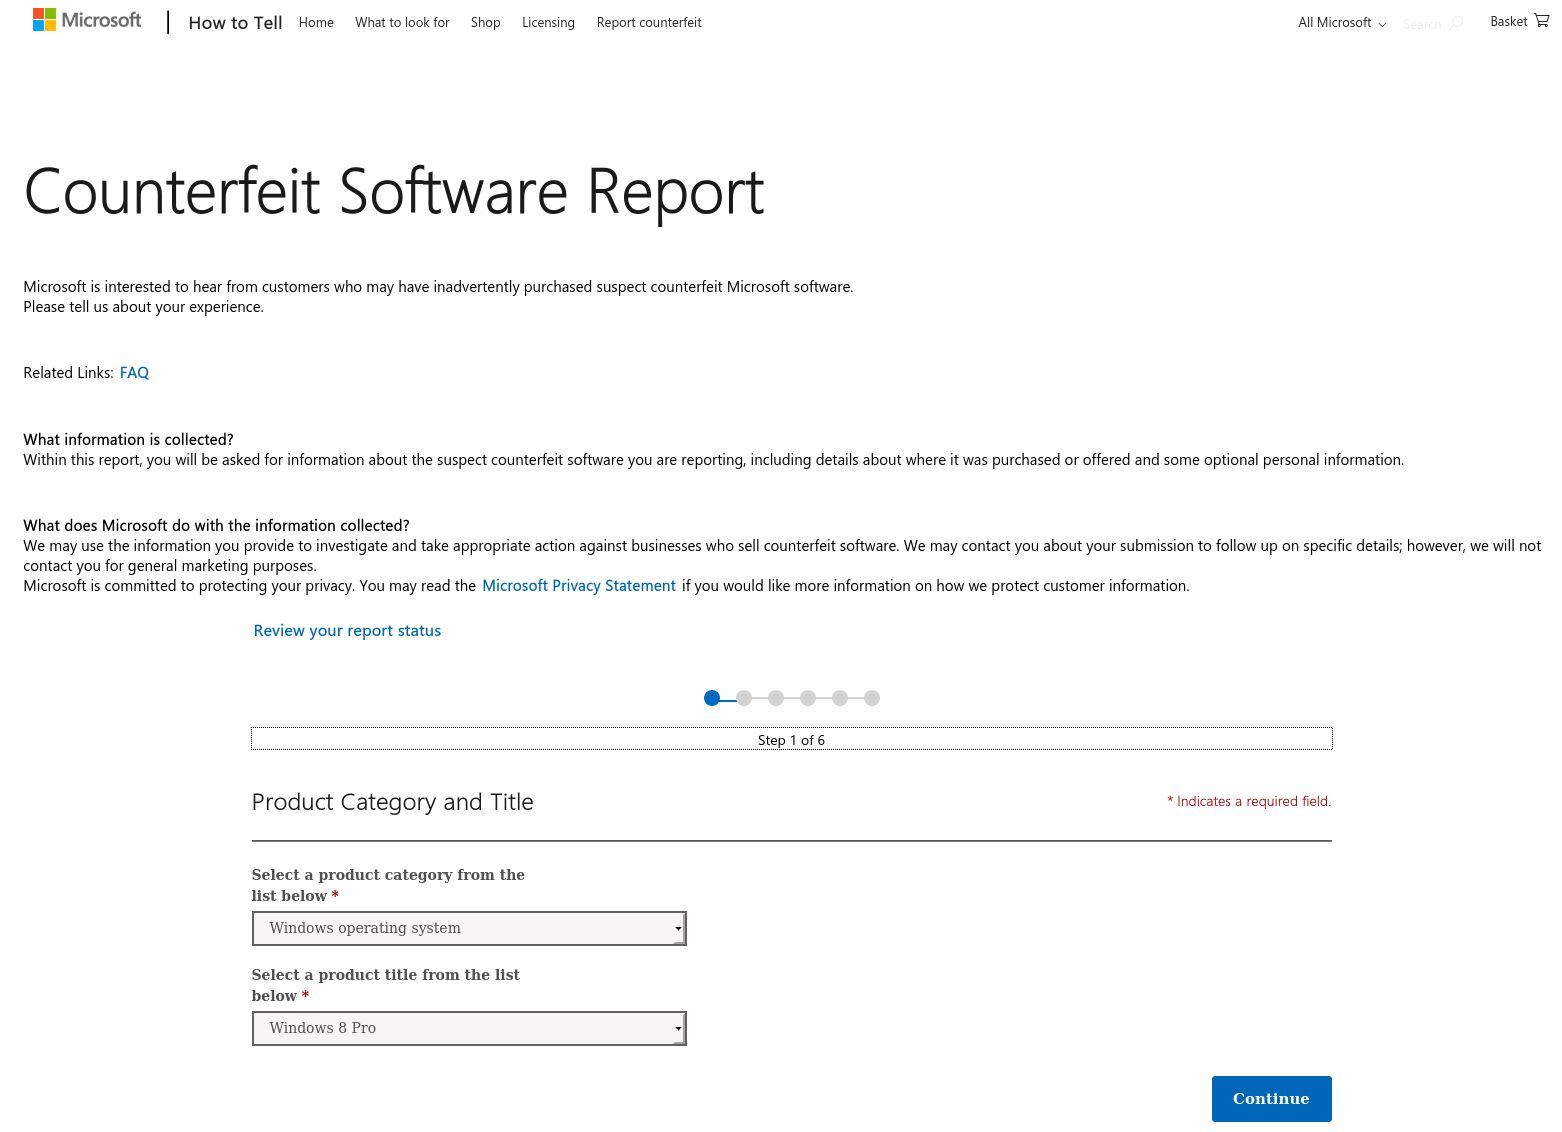 Microsoft Counterfeit Software Report form